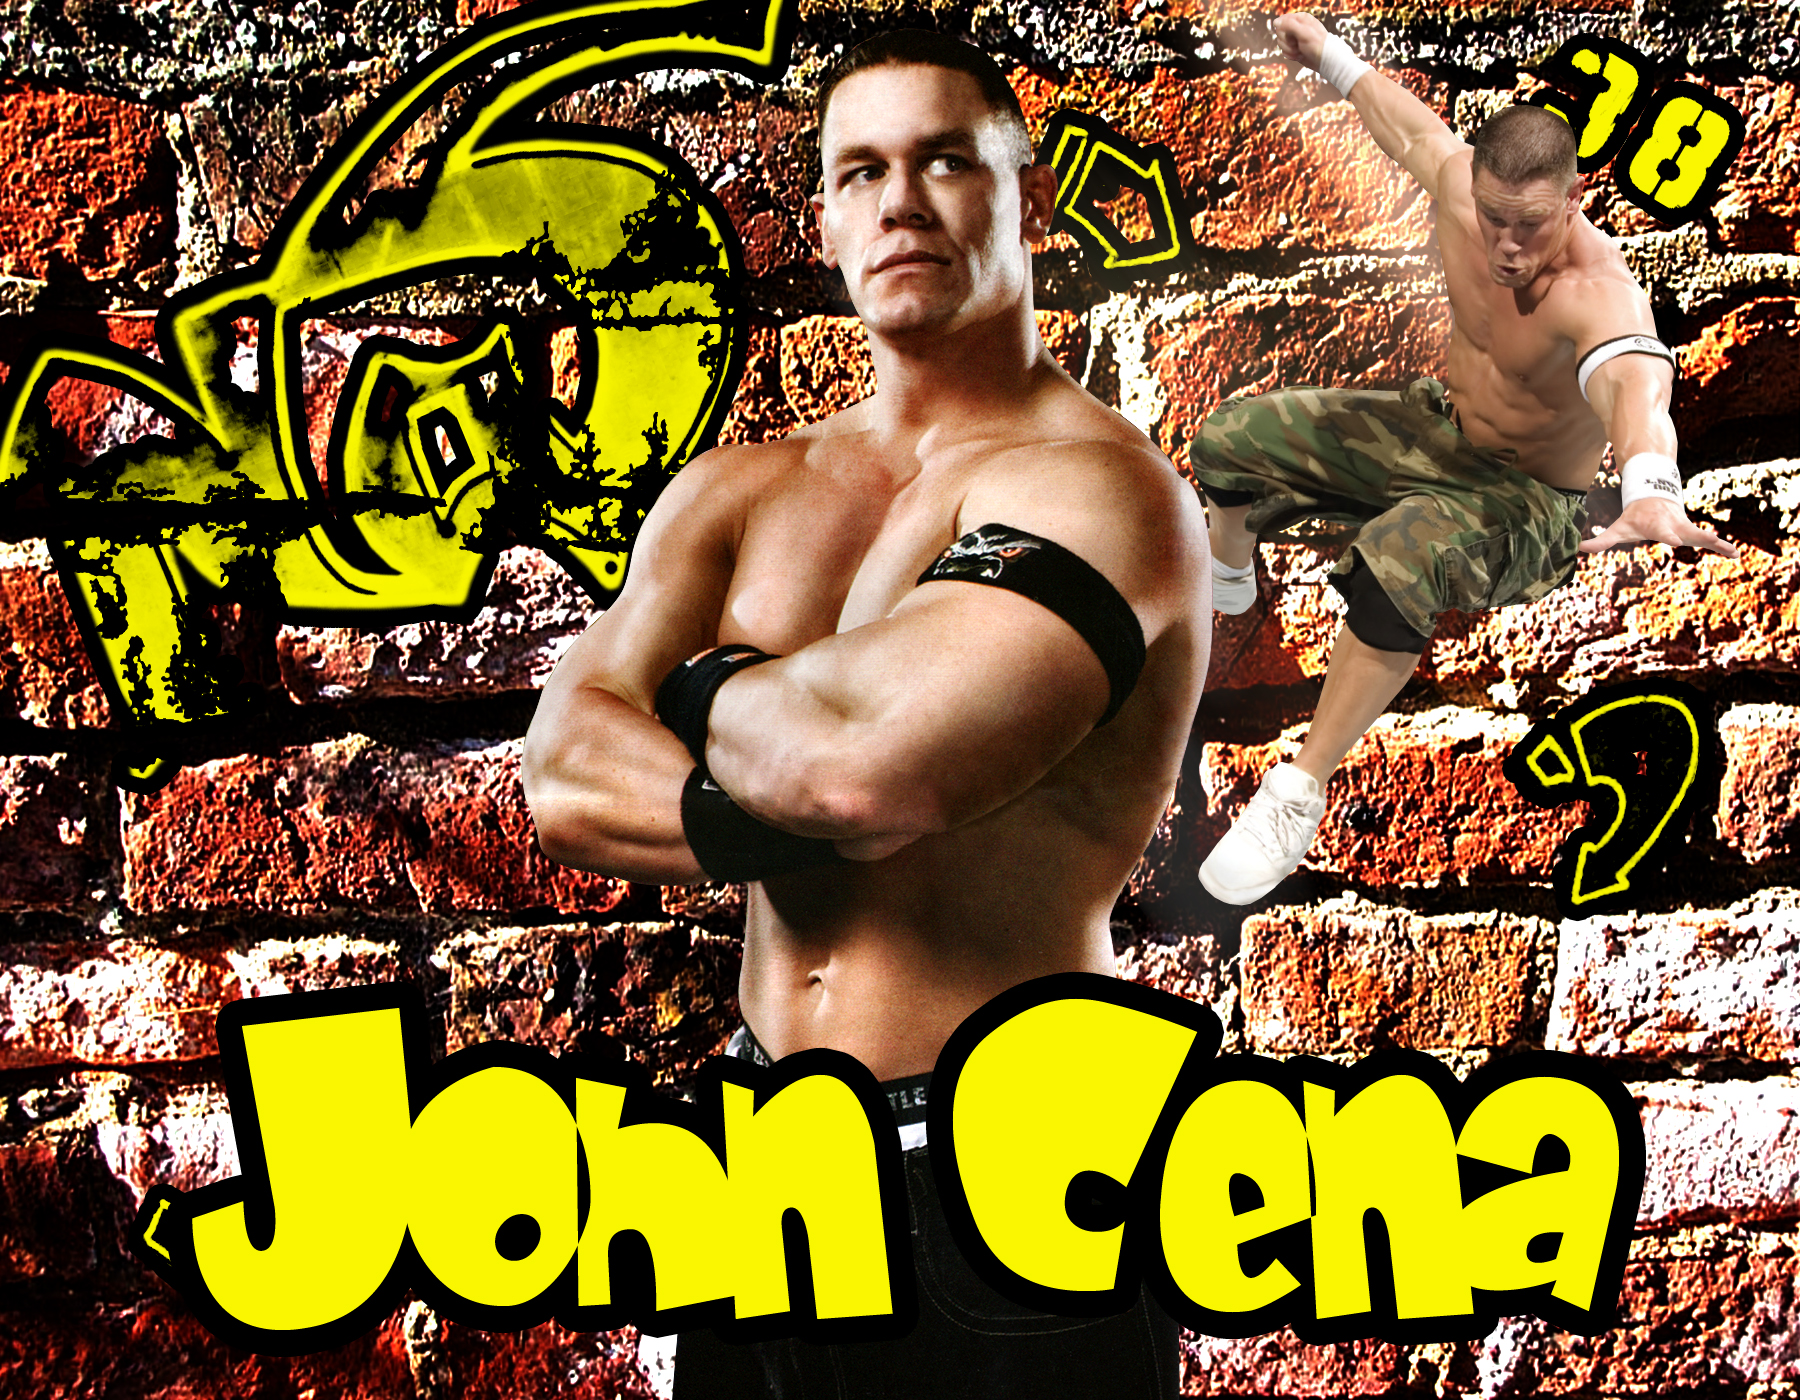 john cena wallpaper humble